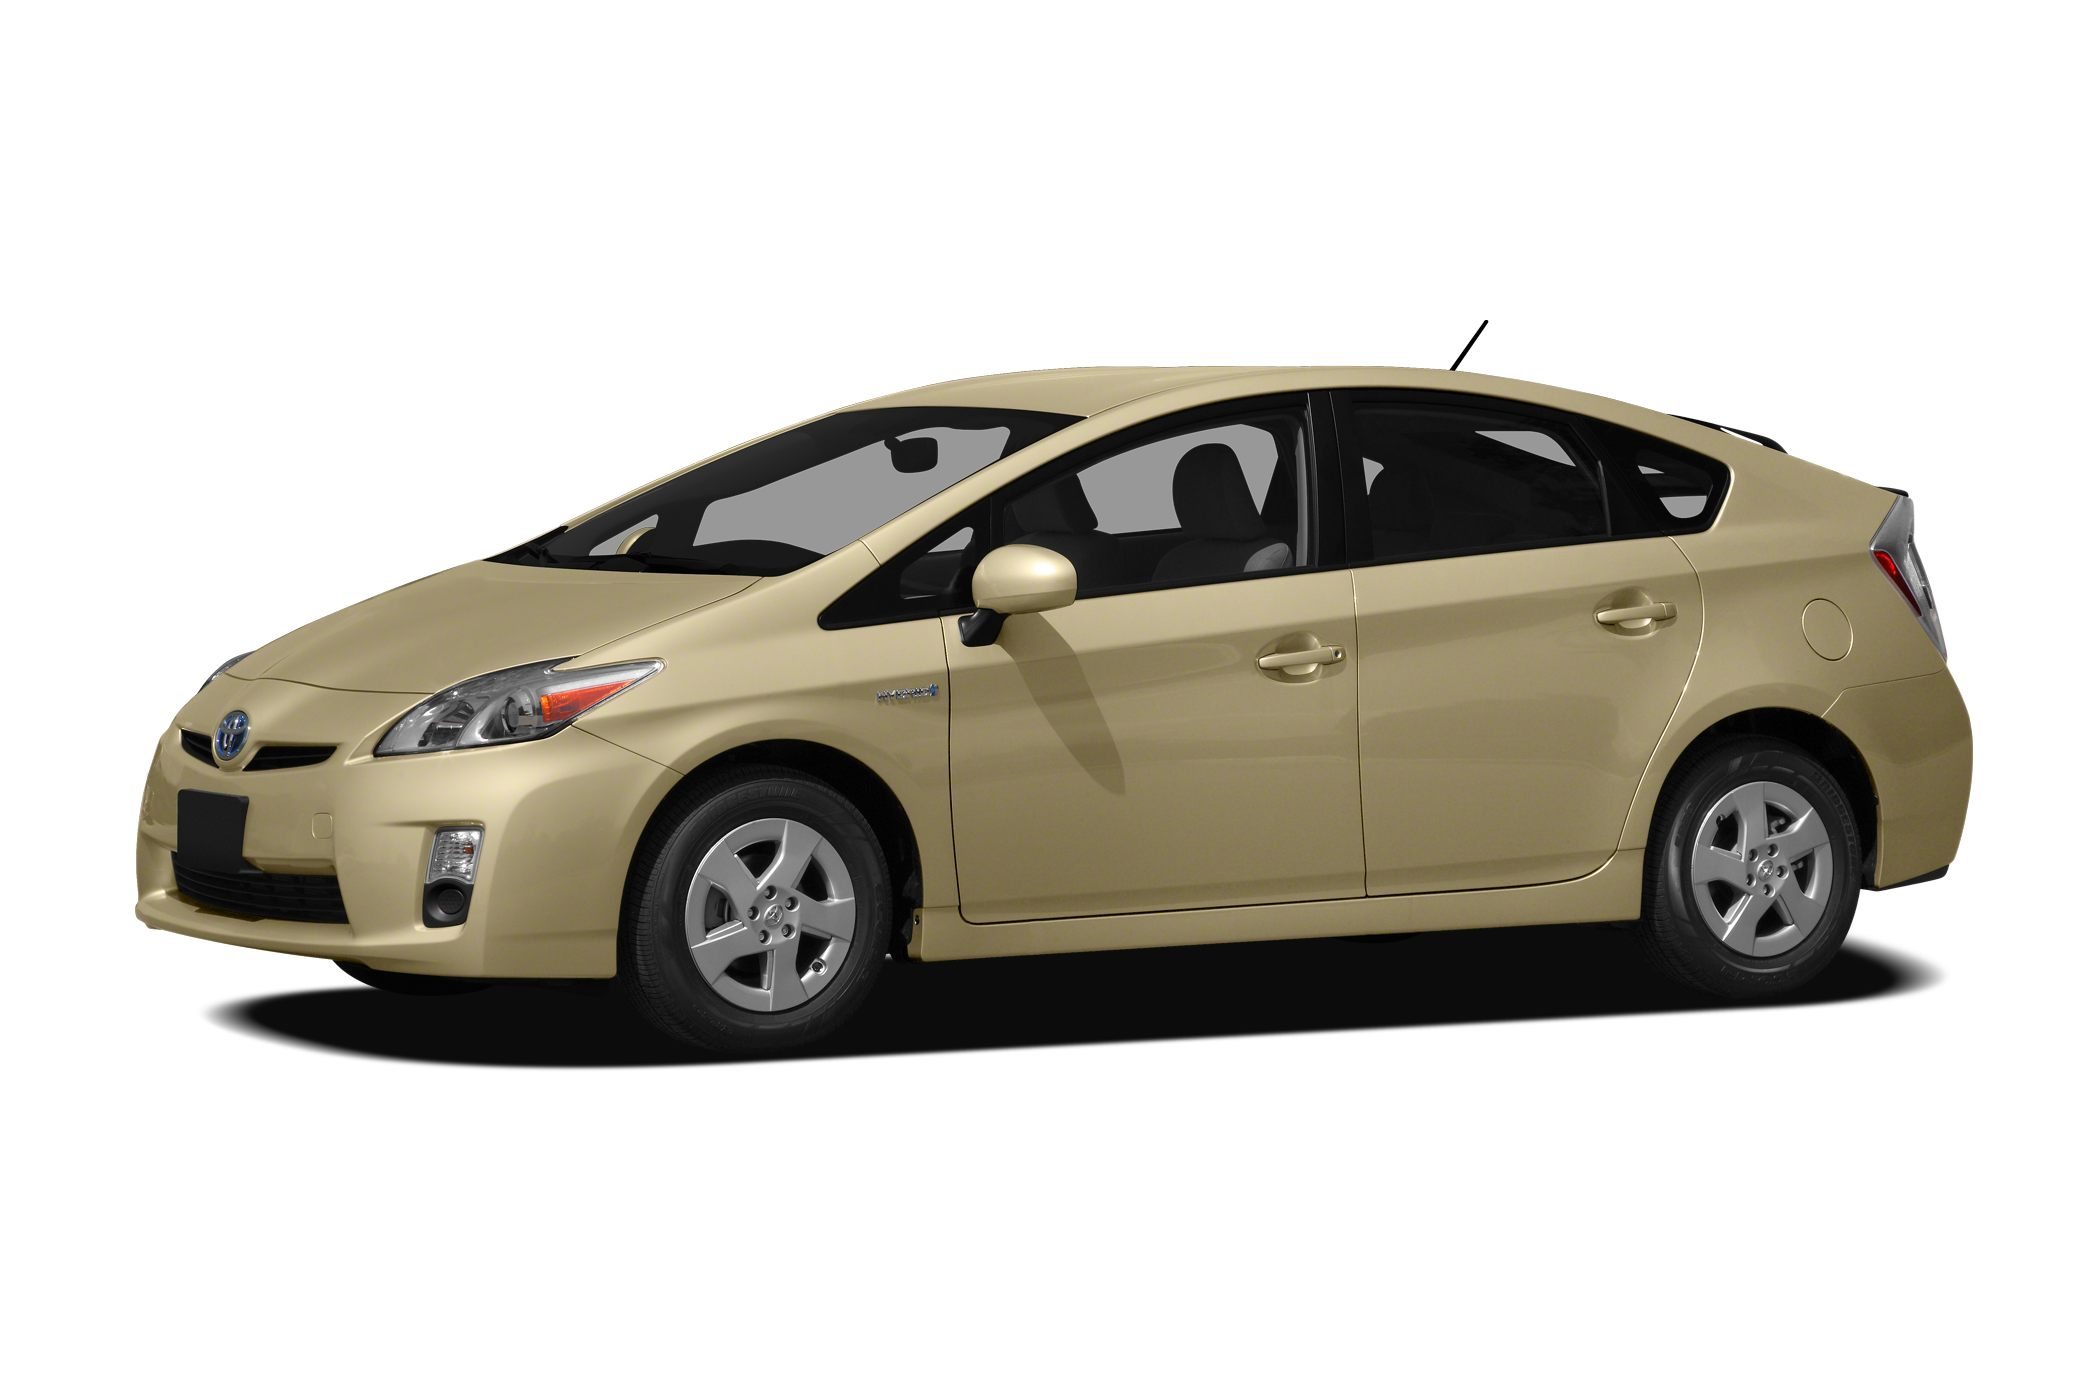 2010 Toyota Prius IV CARFAX 1-Owner IV trim EPA 48 MPG Hwy51 MPG City Heated Leather Seats Blu